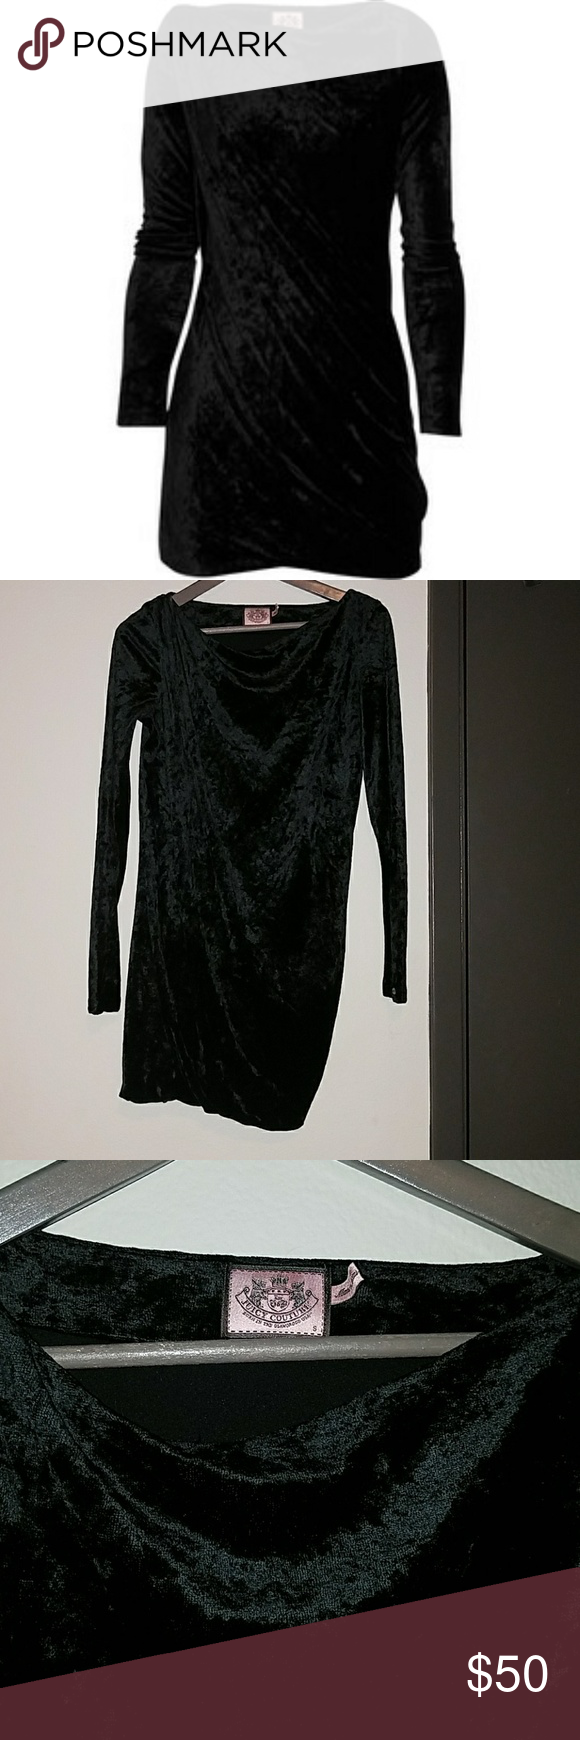 Juicy couture black draped velvet dress juicy couture body con